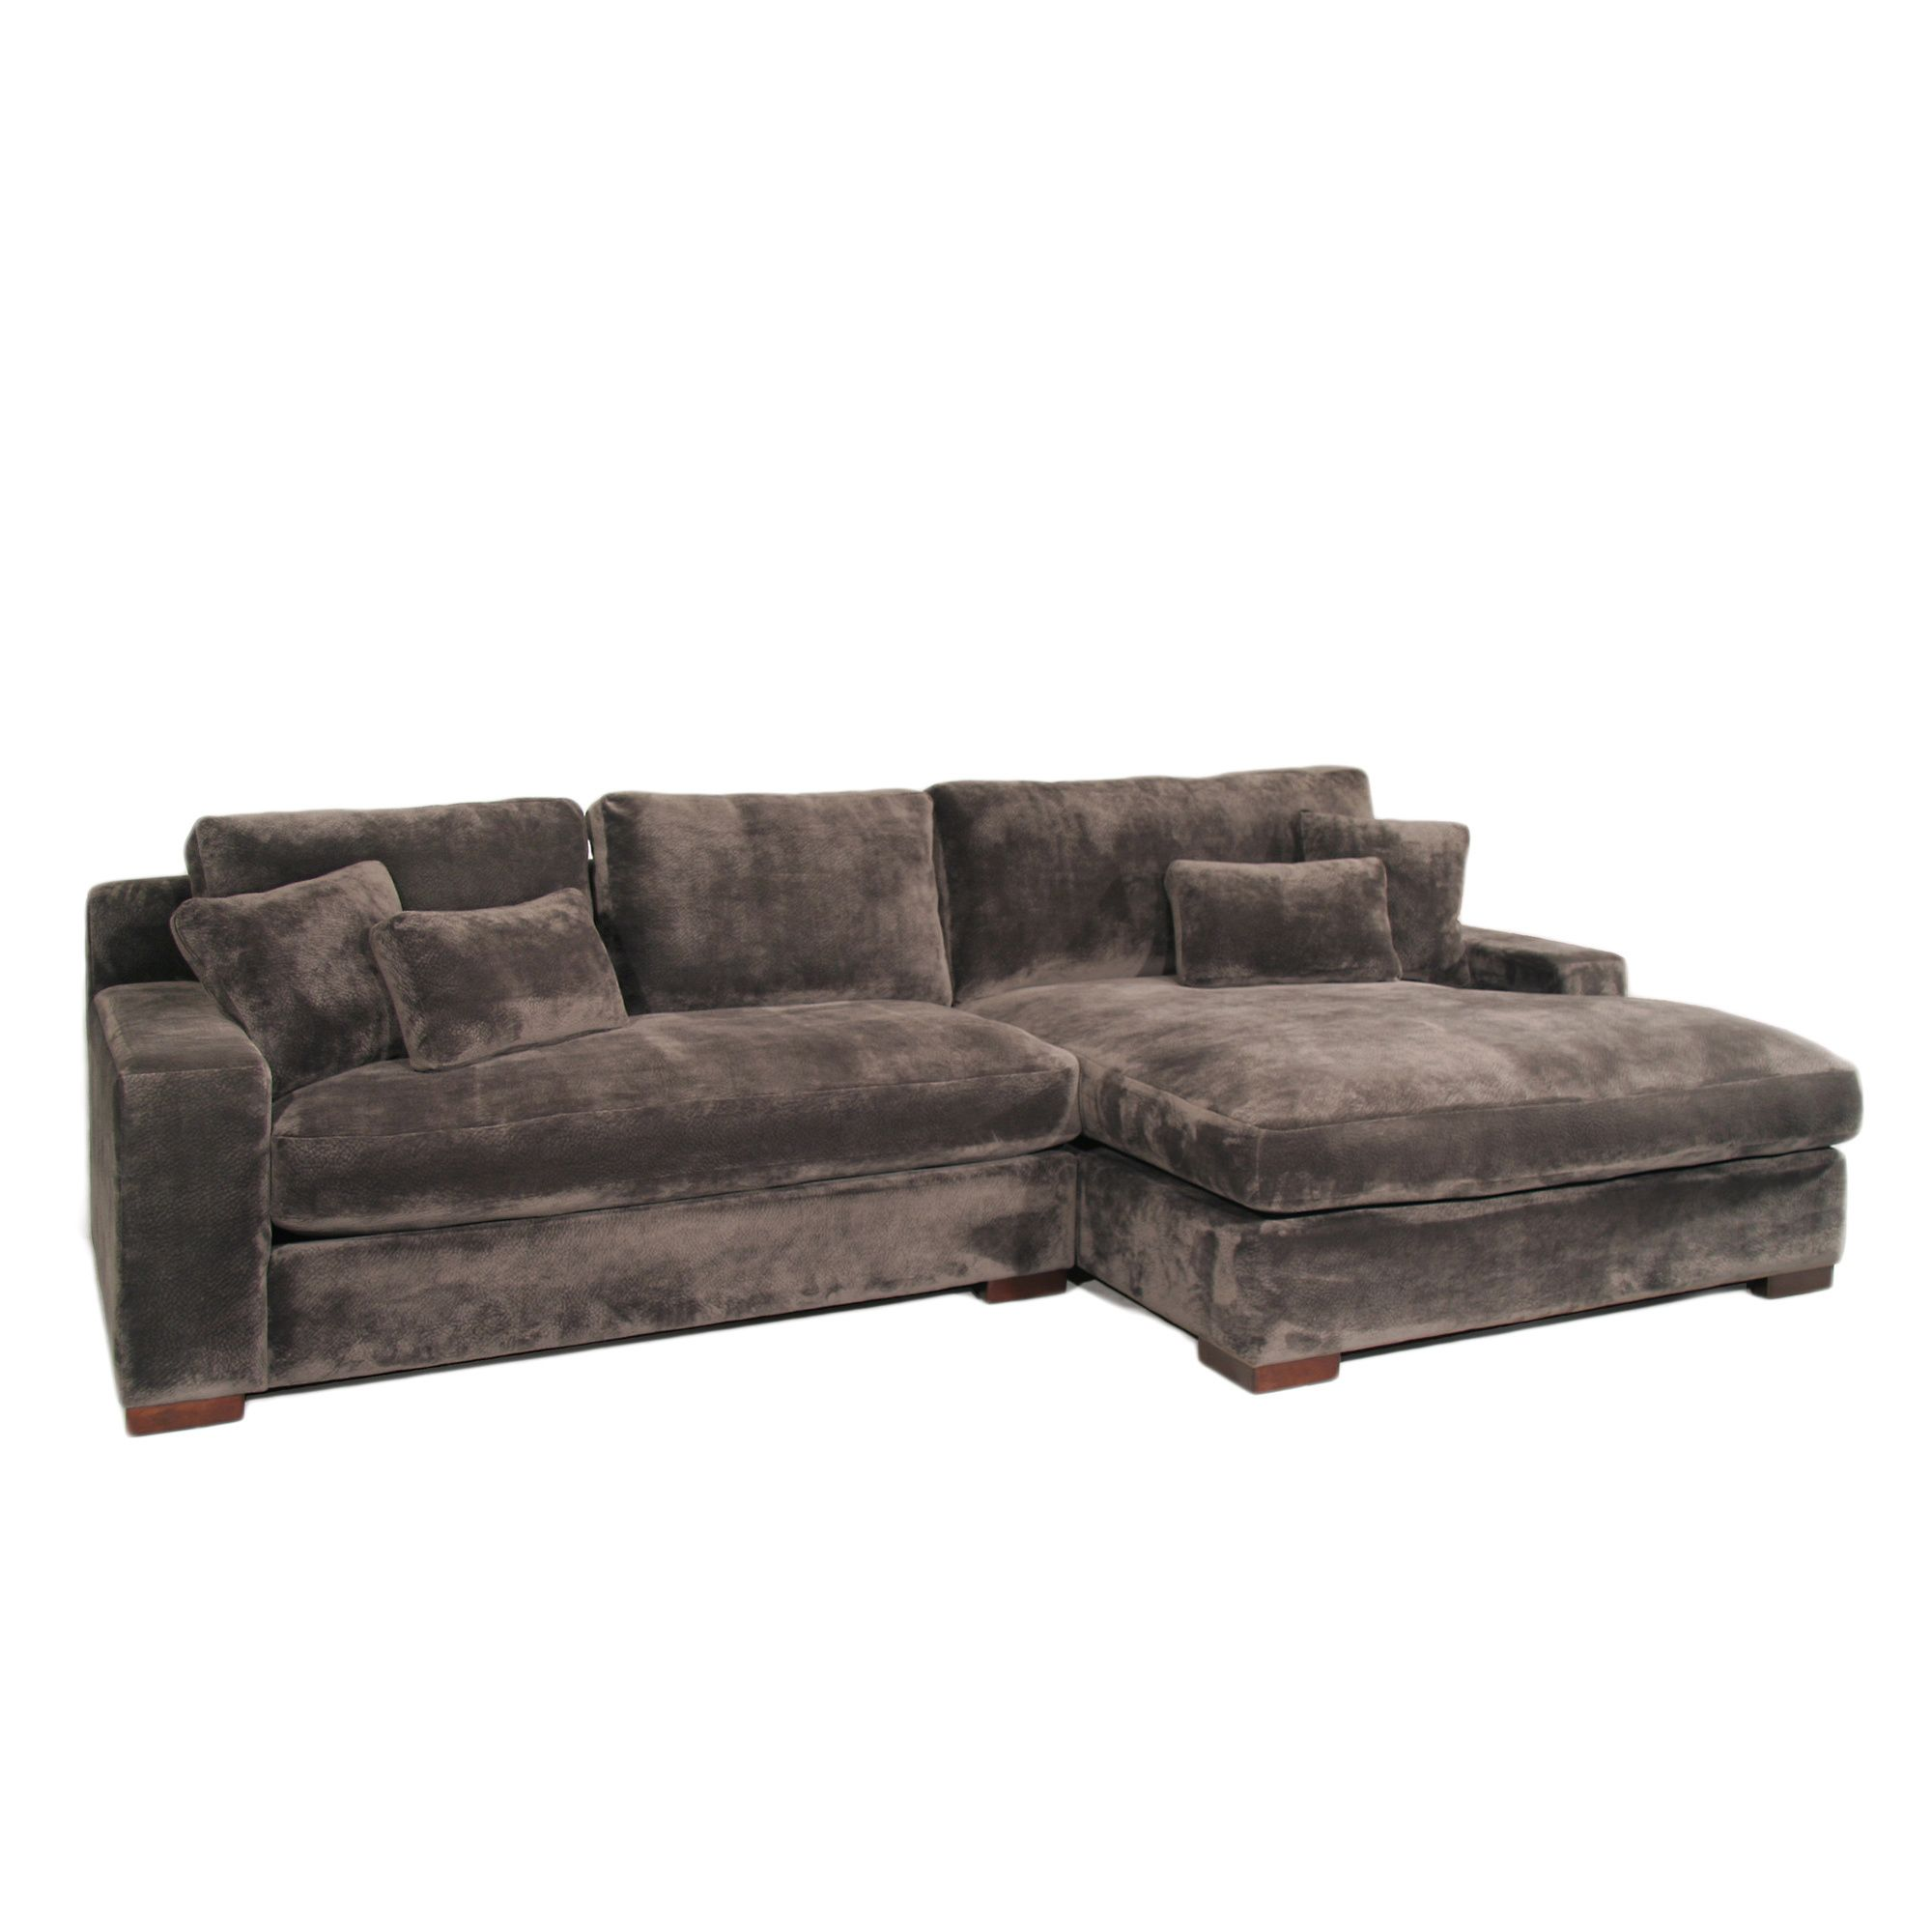 The Casual Contemporary Doris Two Piece Chaise Sectional Is Covered In A Super Soft And